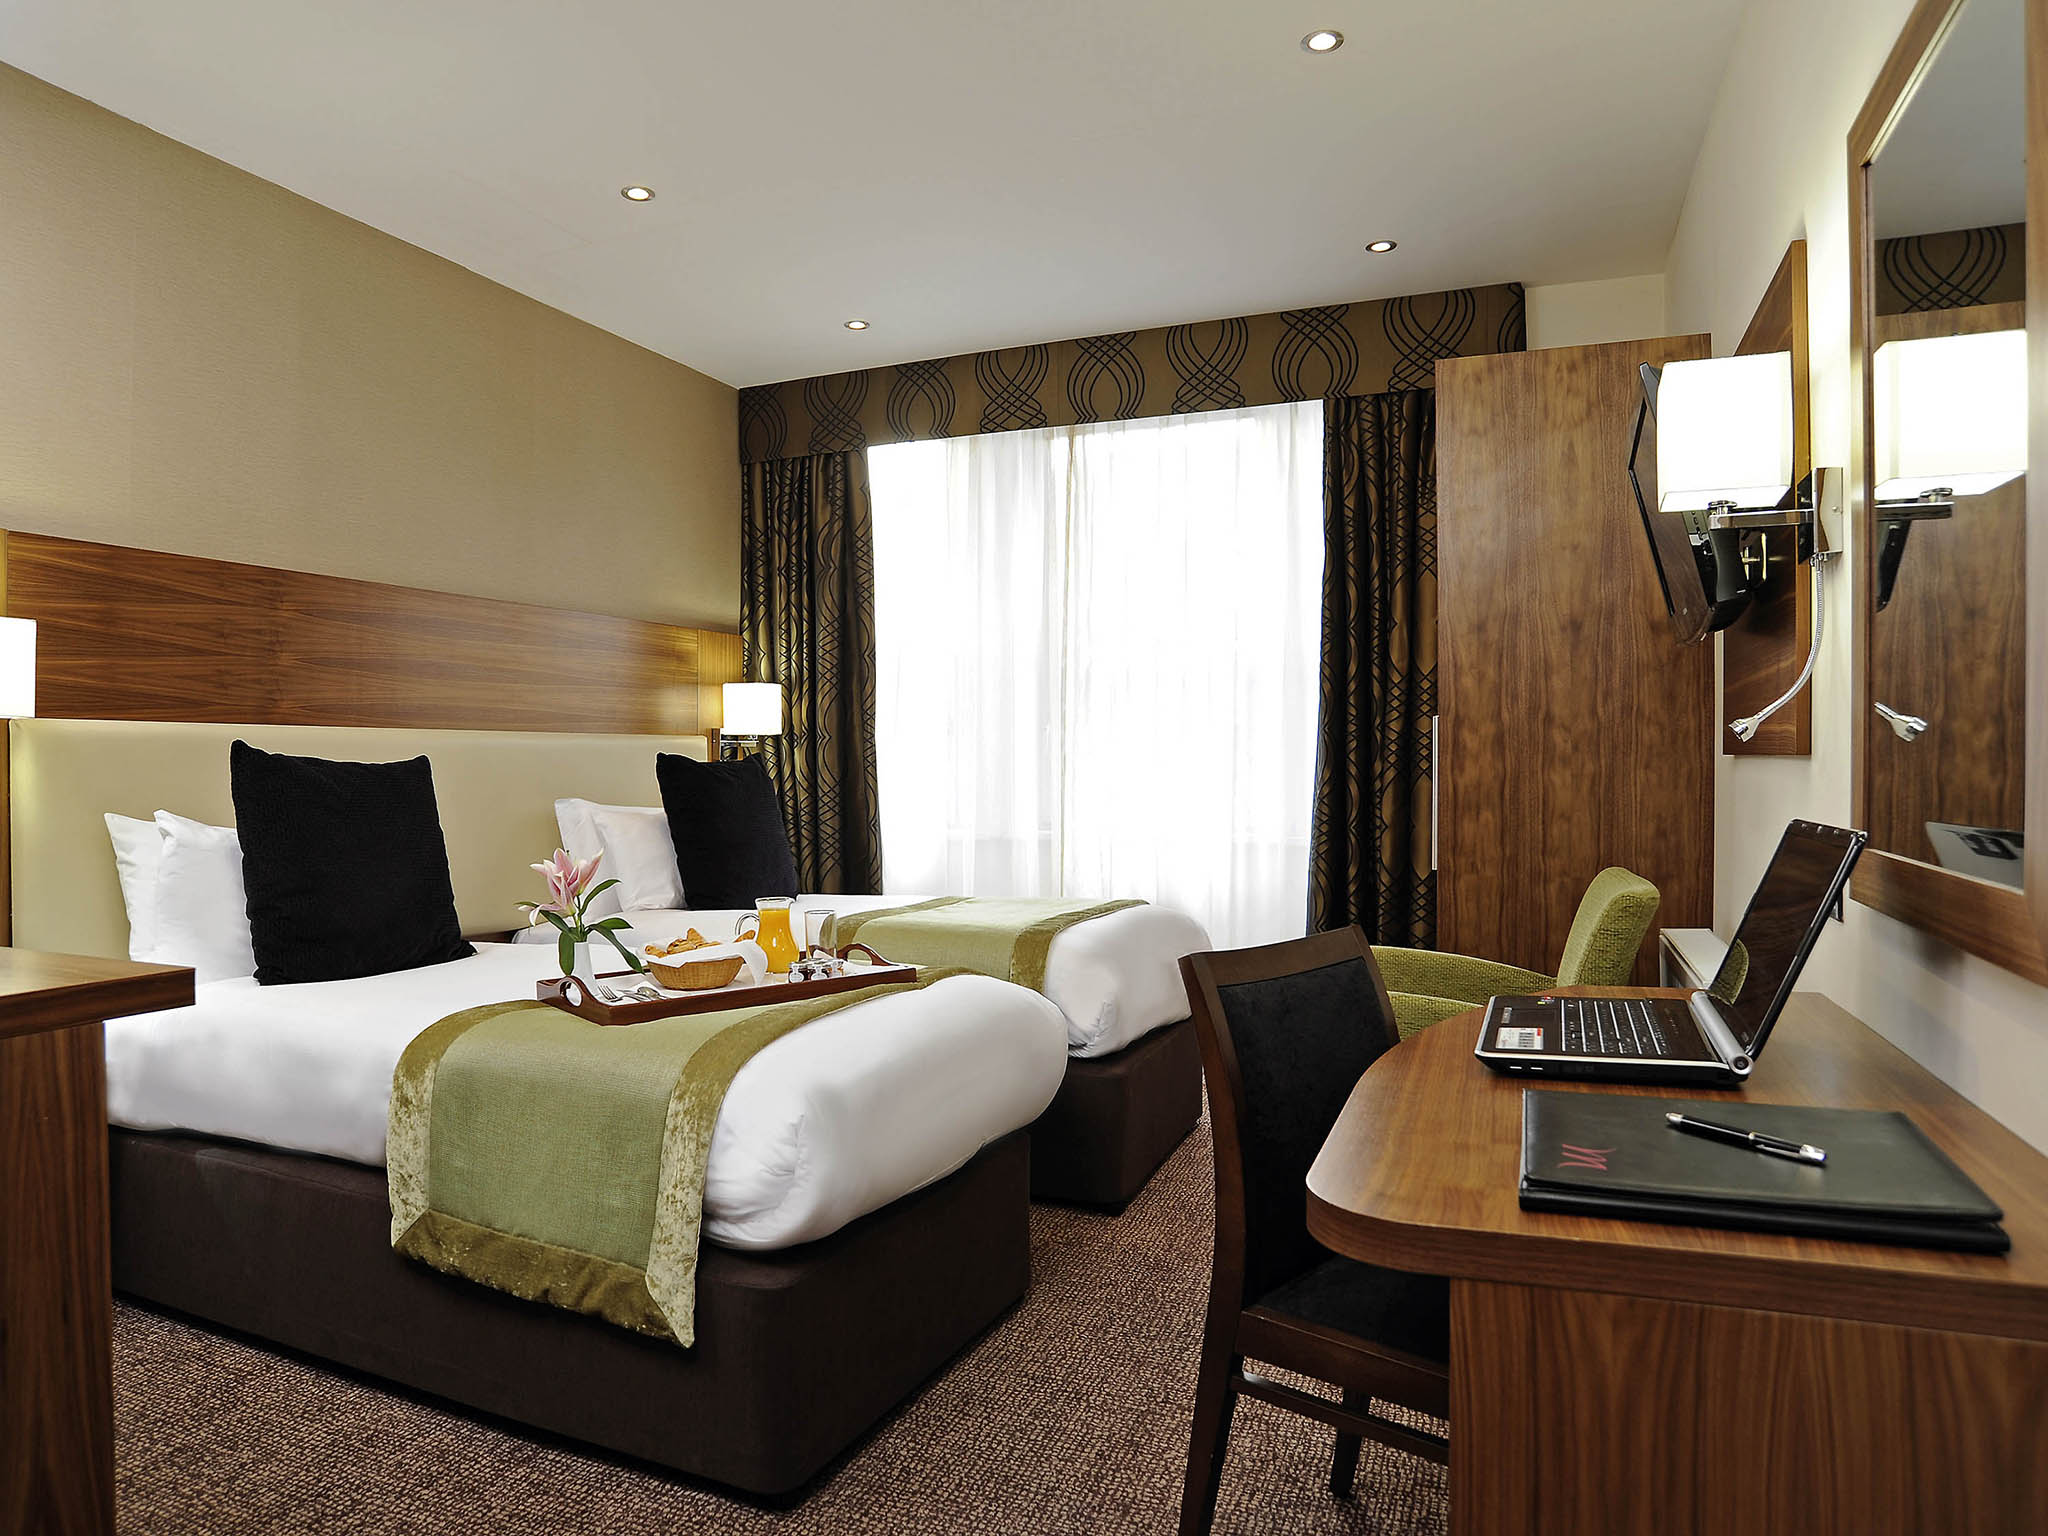 Mercure london bloomsbury quality hotel in london for Hotel adagio londres